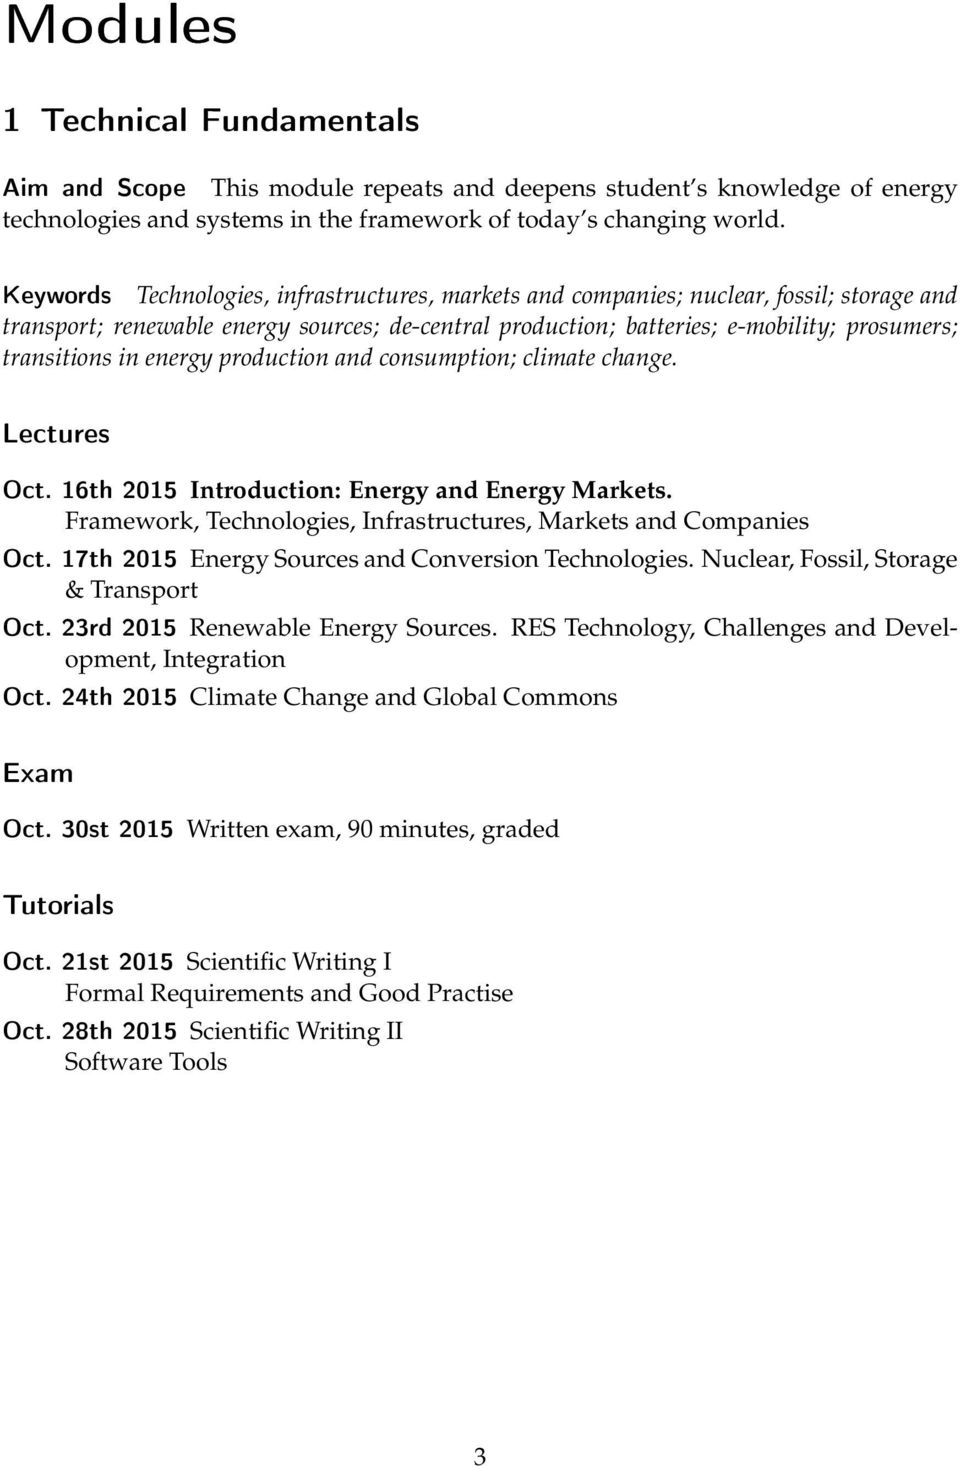 in energy production and consumption; climate change. Lectures Oct. 16th 2015 Introduction: Energy and Energy Markets. Framework, Technologies, Infrastructures, Markets and Companies Oct.